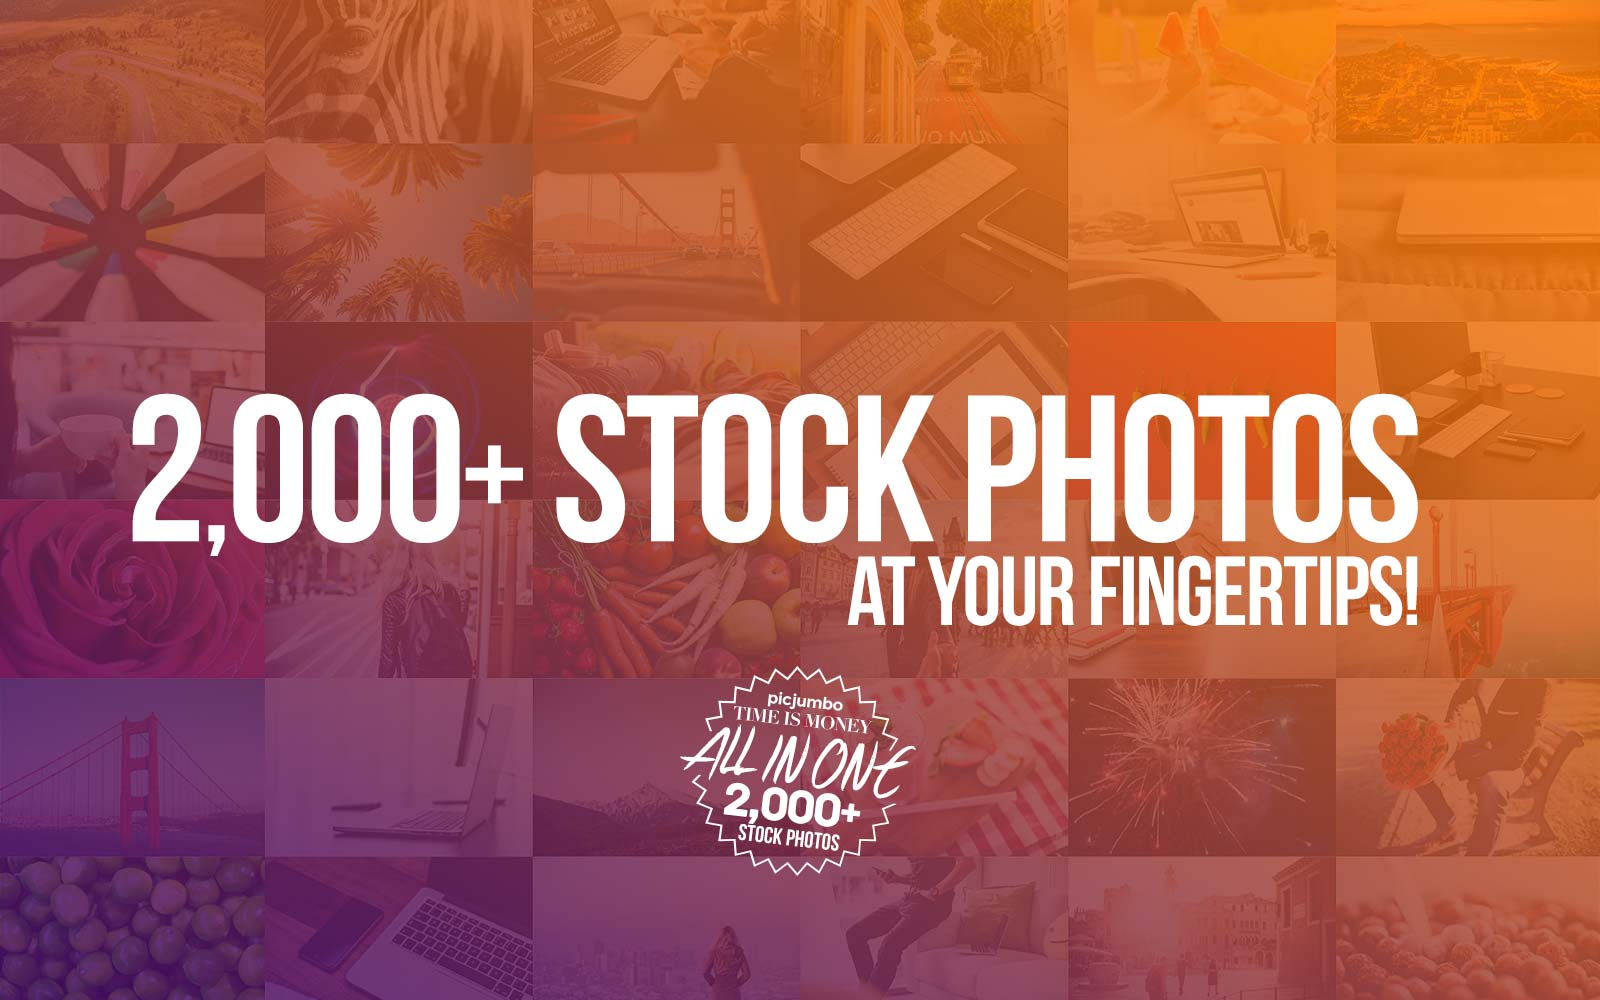 picjumbo BLOG: 2,000+ Hi-Res Stock Photos at your fingertips!